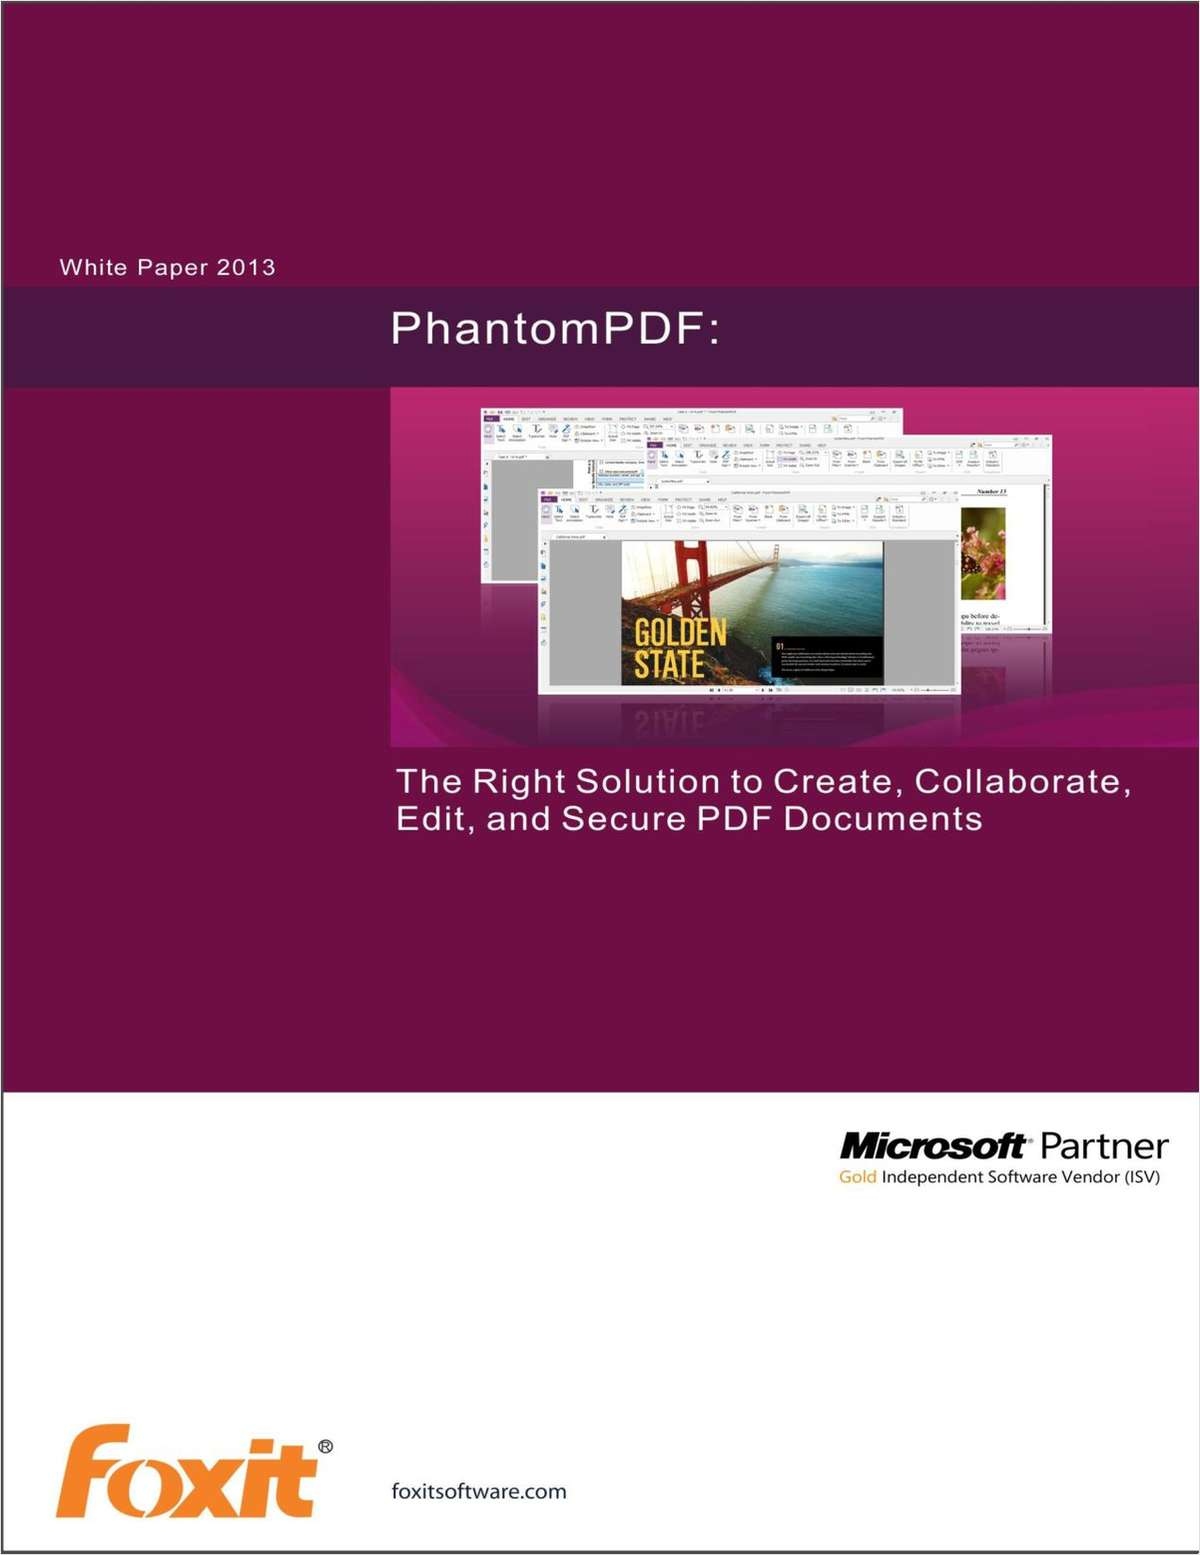 The Right Solution to Create, Collaborate, Edit, and Secure PDF Documents